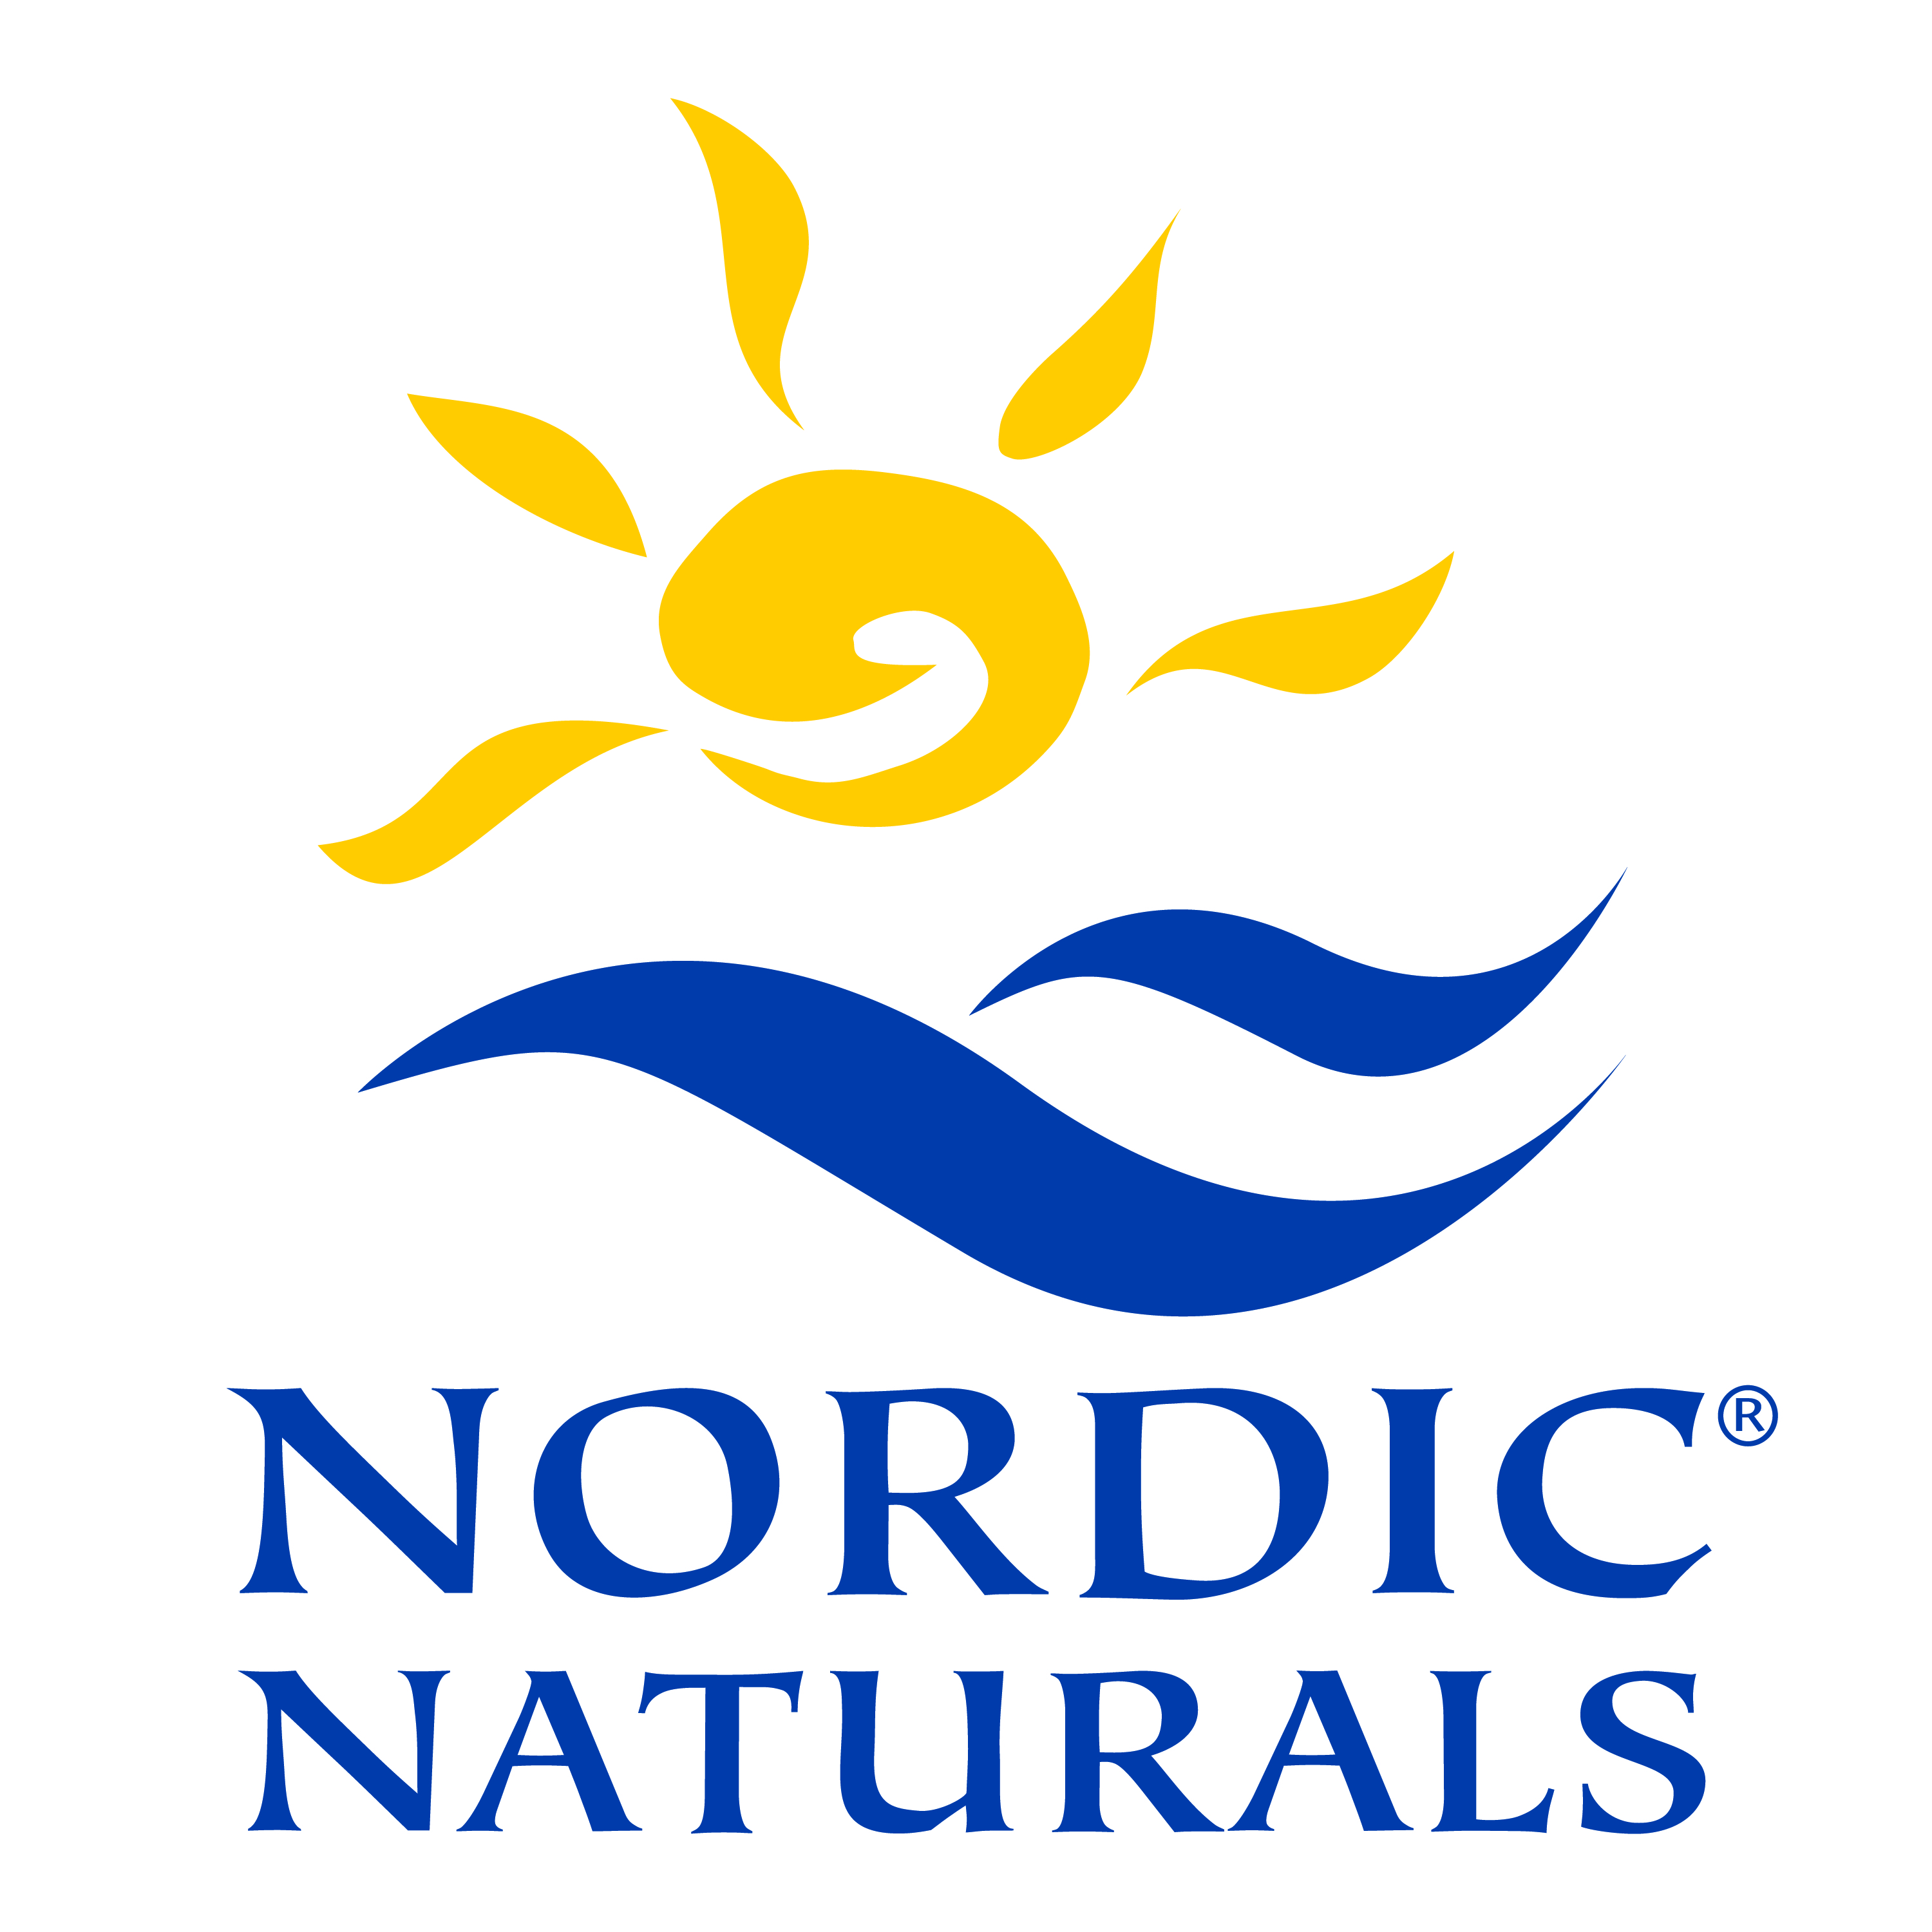 Go to Nordic Naturals.